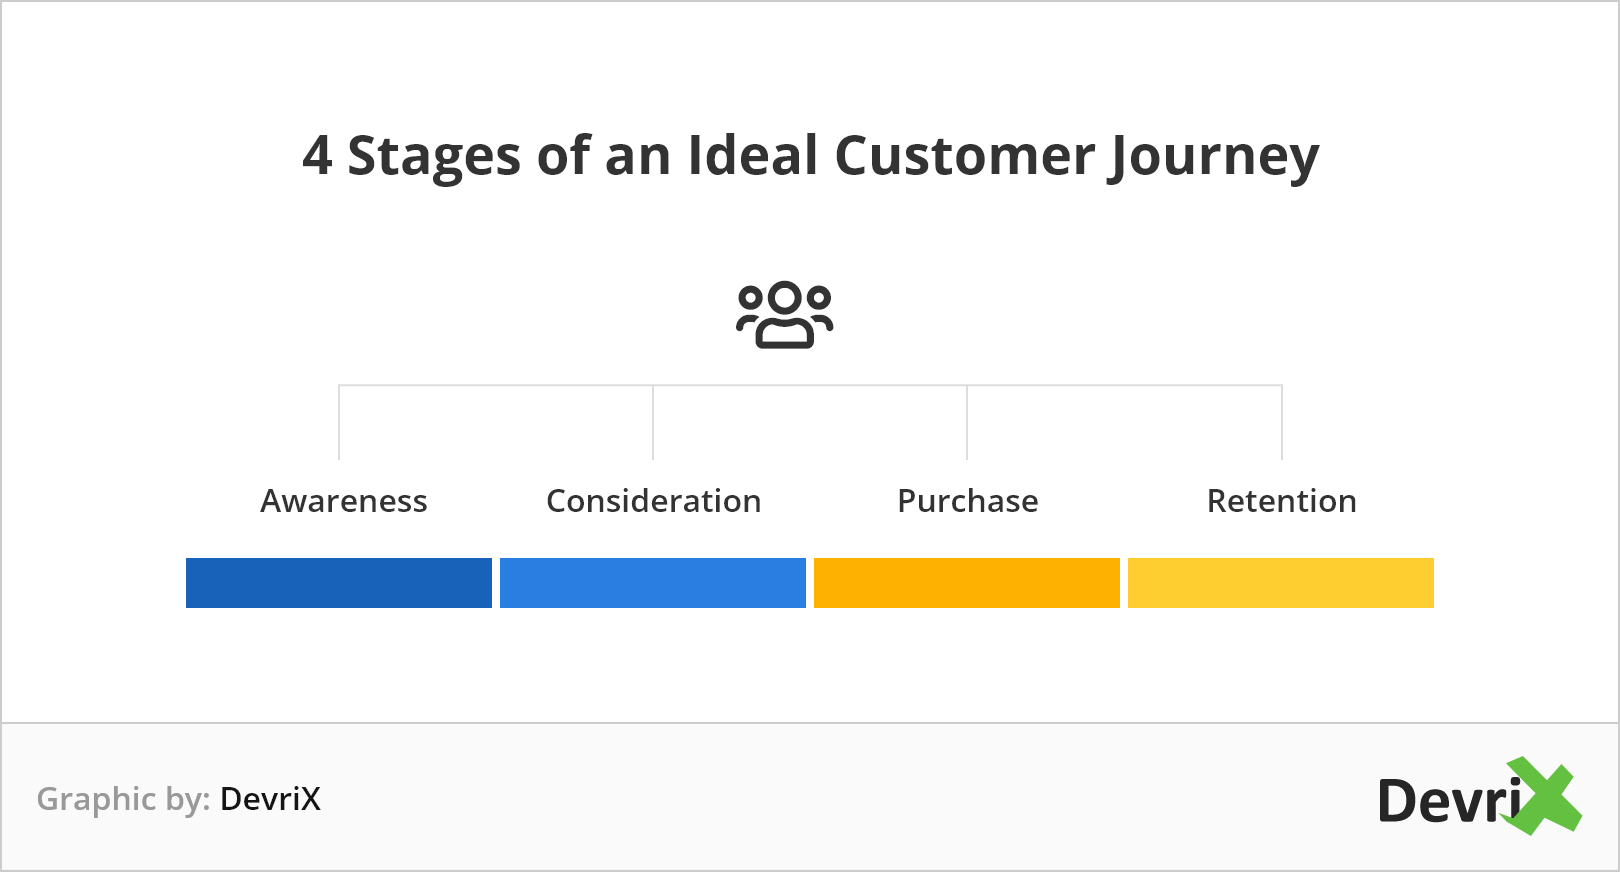 4-stages-of-an-ideal-customer-journey@2x